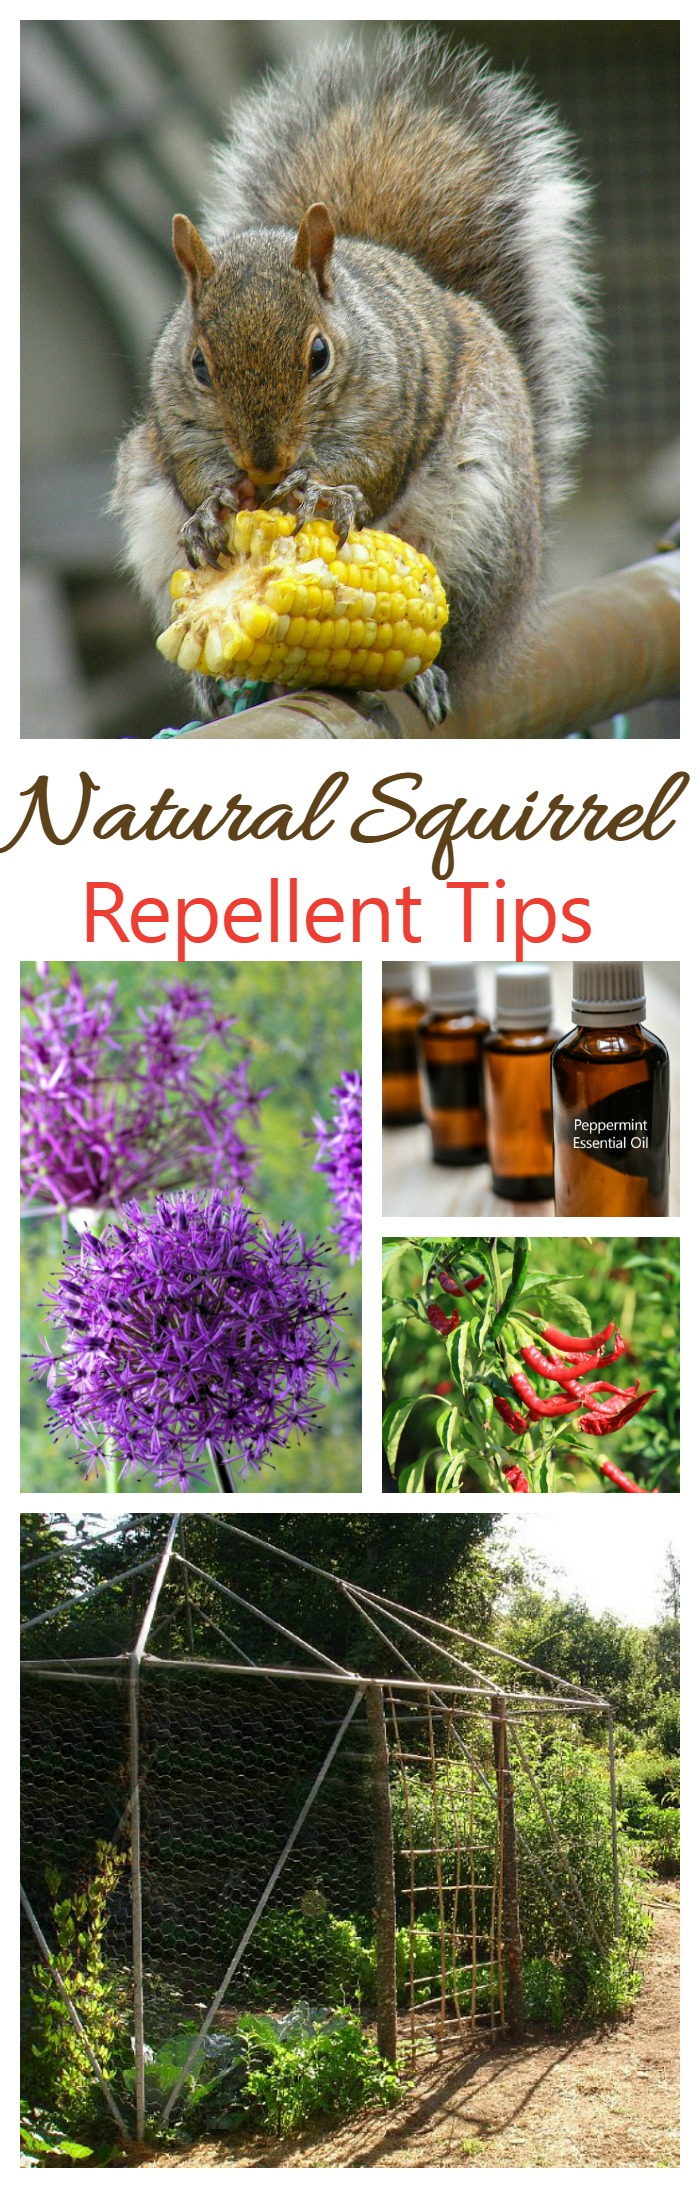 These 12 natural squirrel repellent ideas will do the job of keeping squirrels out of your yard and away from your vegetables.